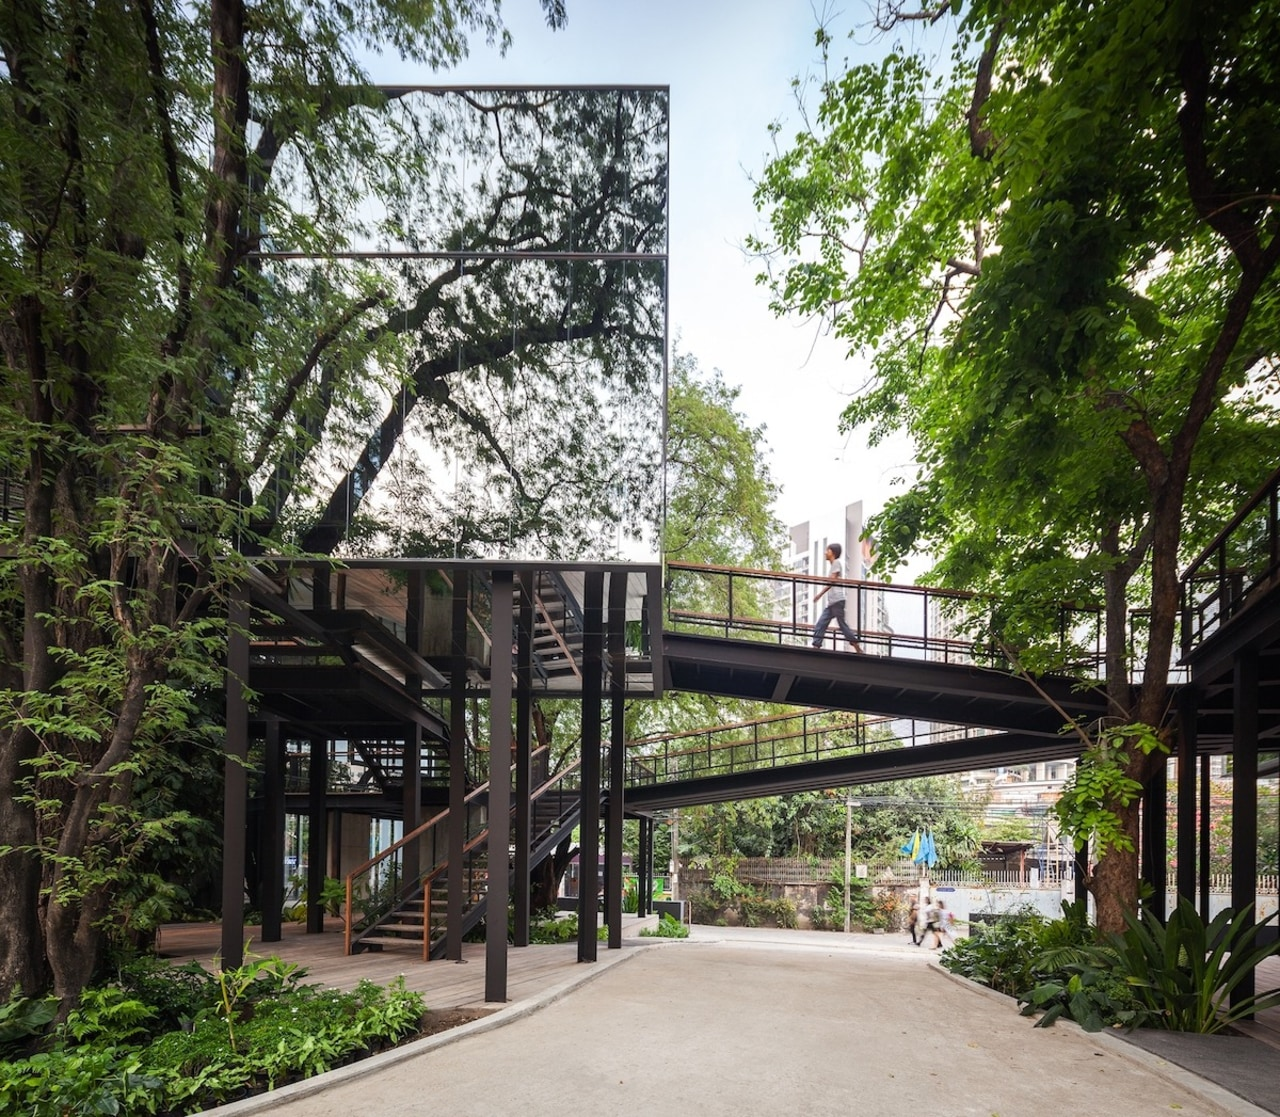 The glass structure blends into the trees - architecture, condominium, plant, real estate, skyway, tree, walkway, black, white